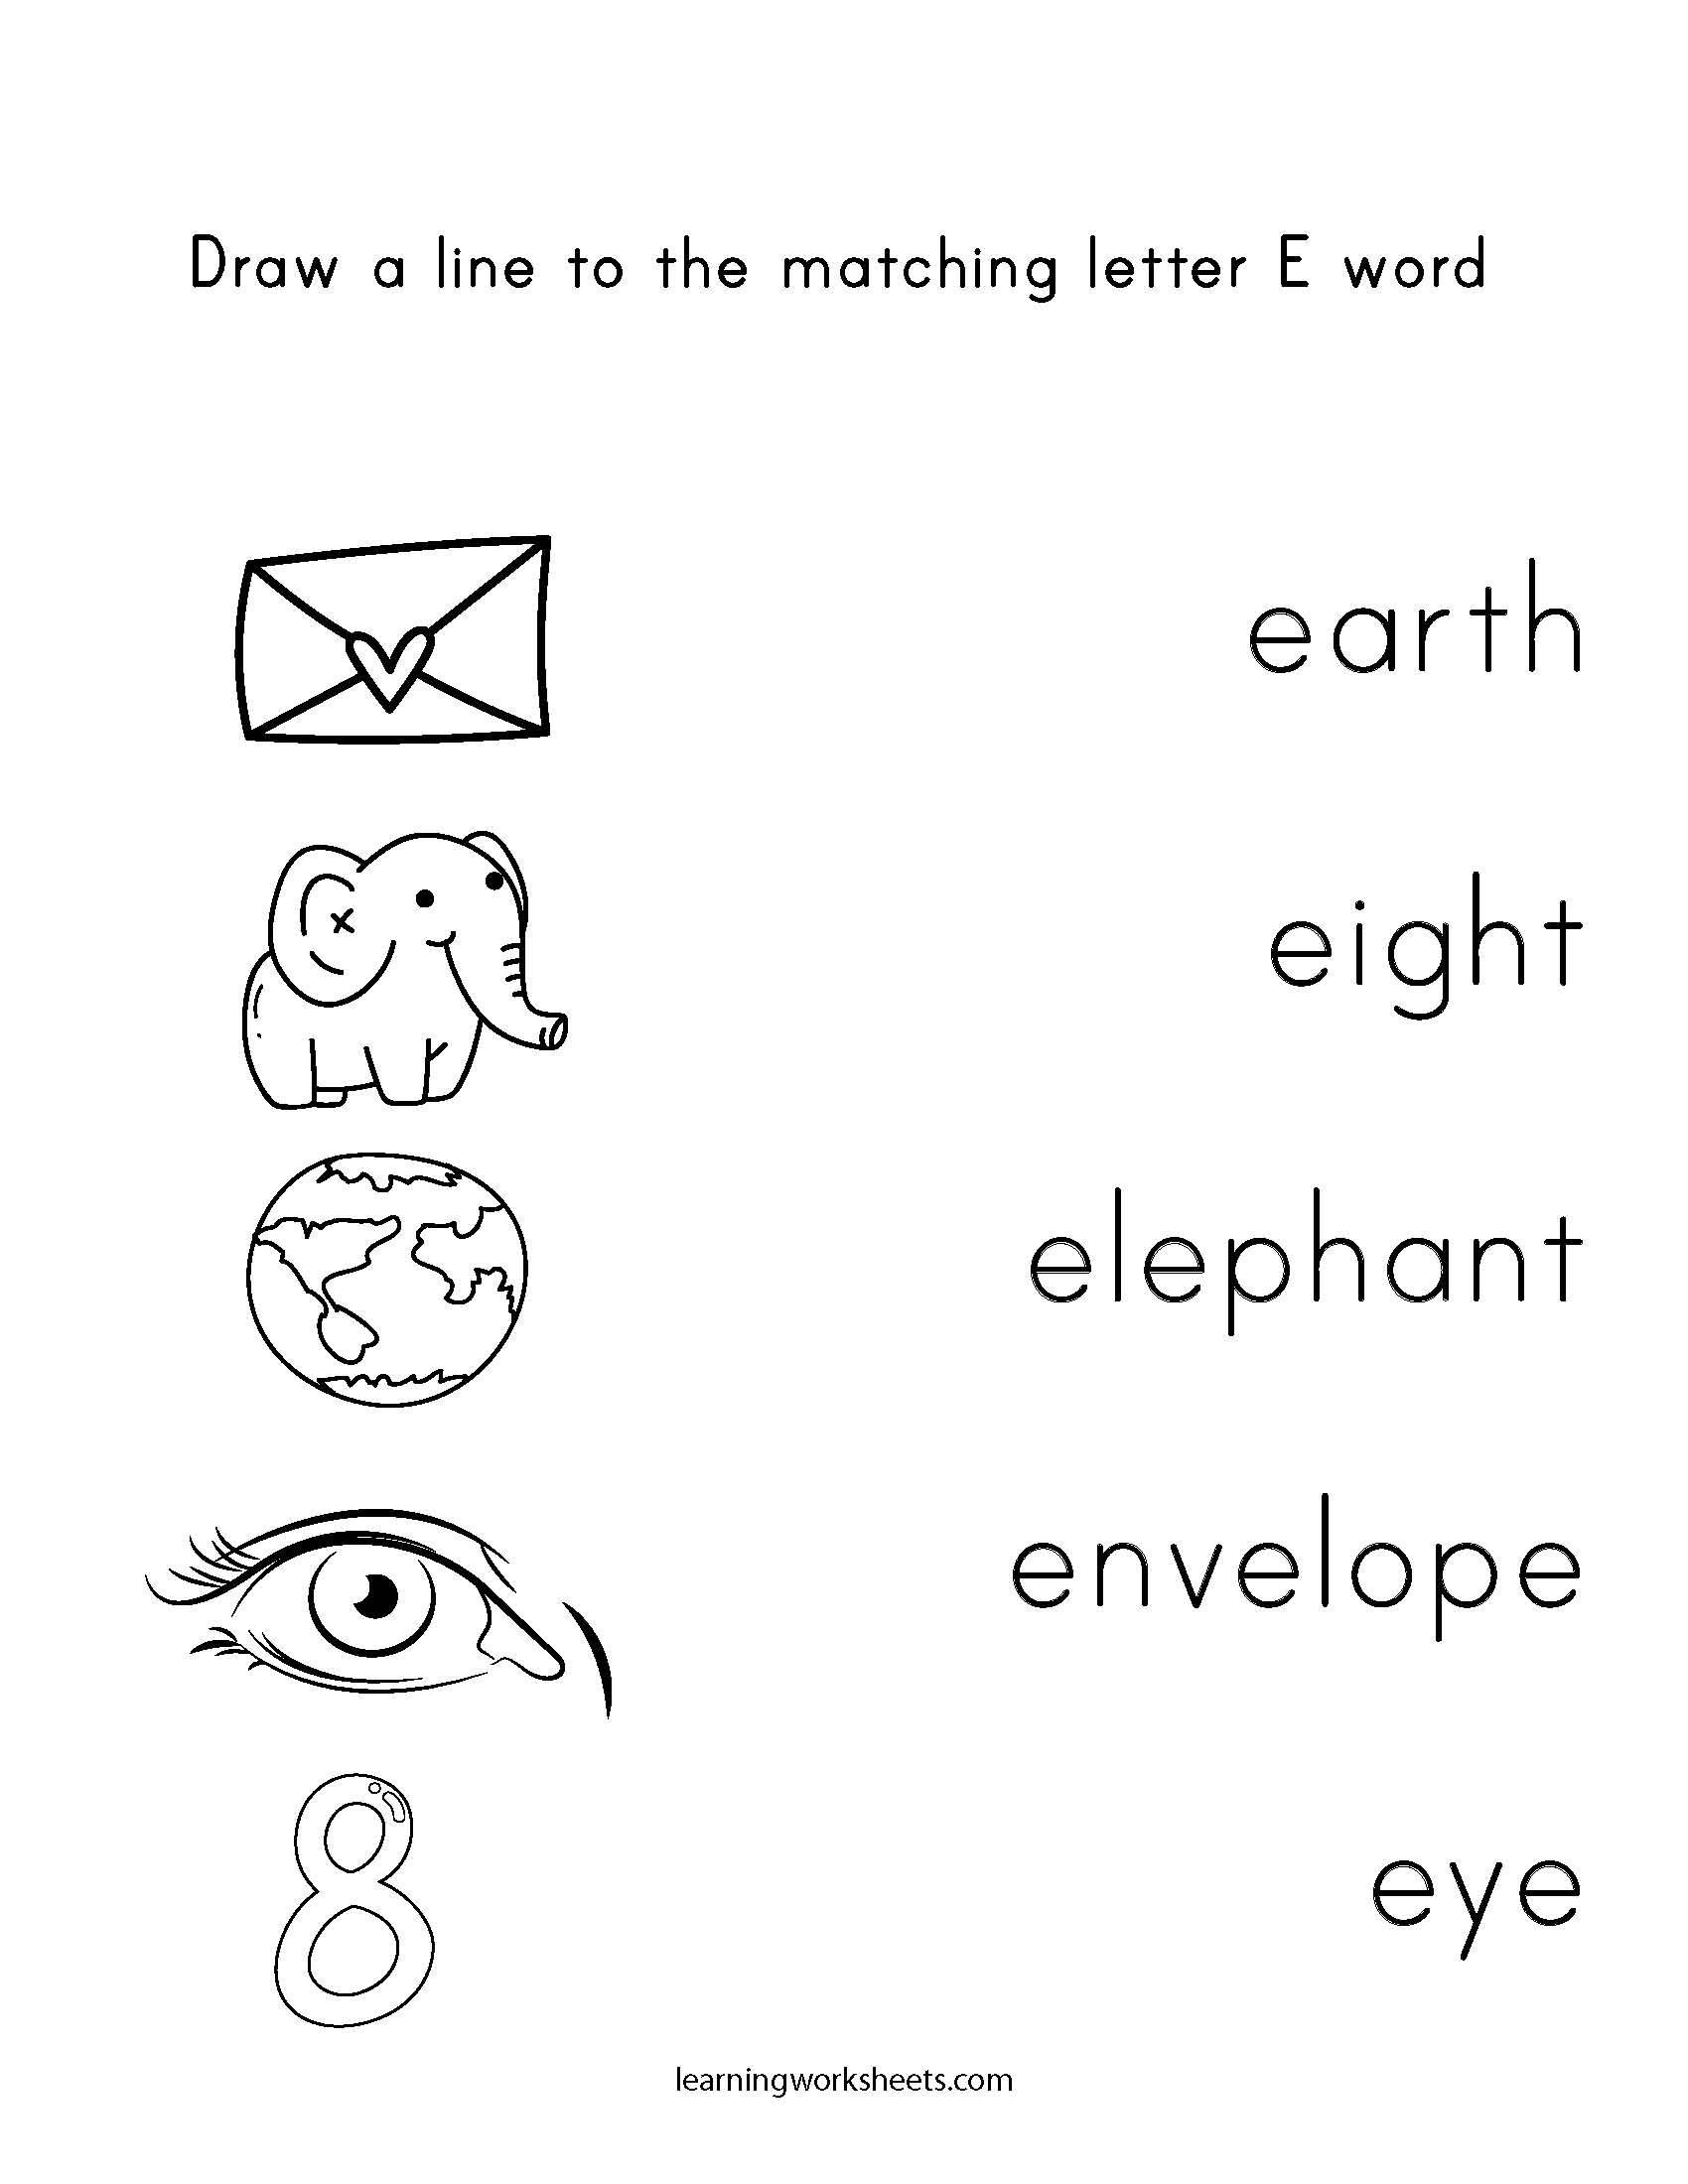 Draw A Line To The Matching Letter E Word